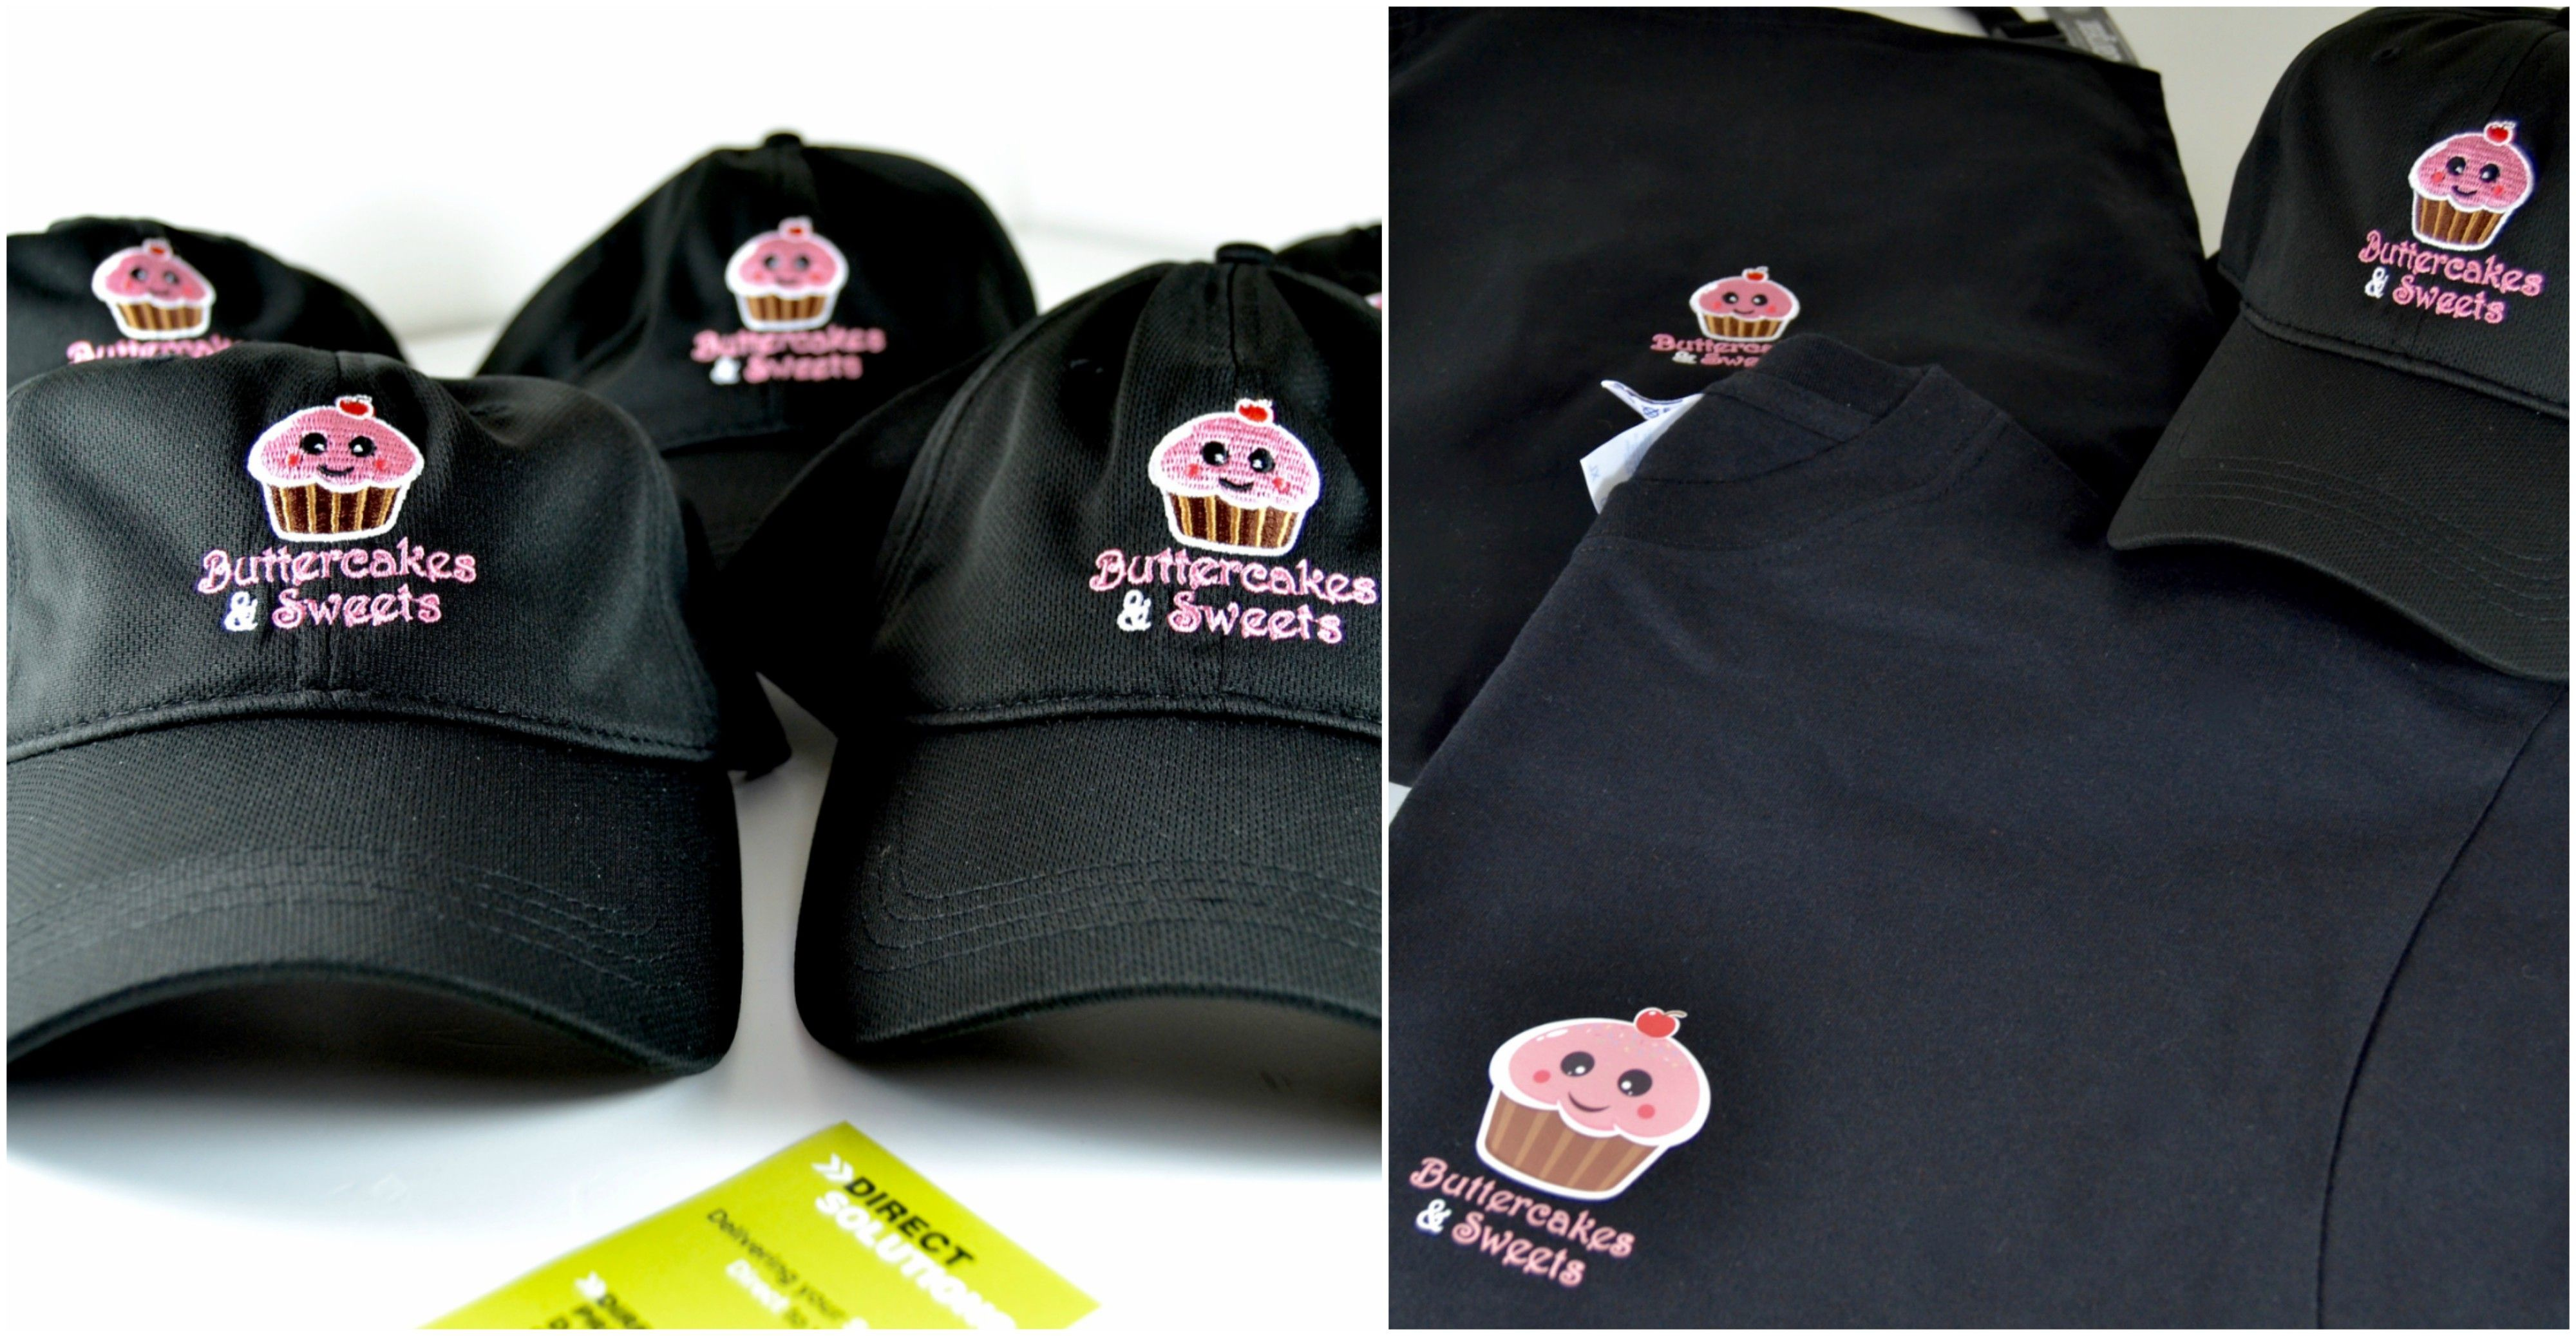 258b24ba4 New uniform for Butter cakes and sweets -- embroidered logo on hats ...